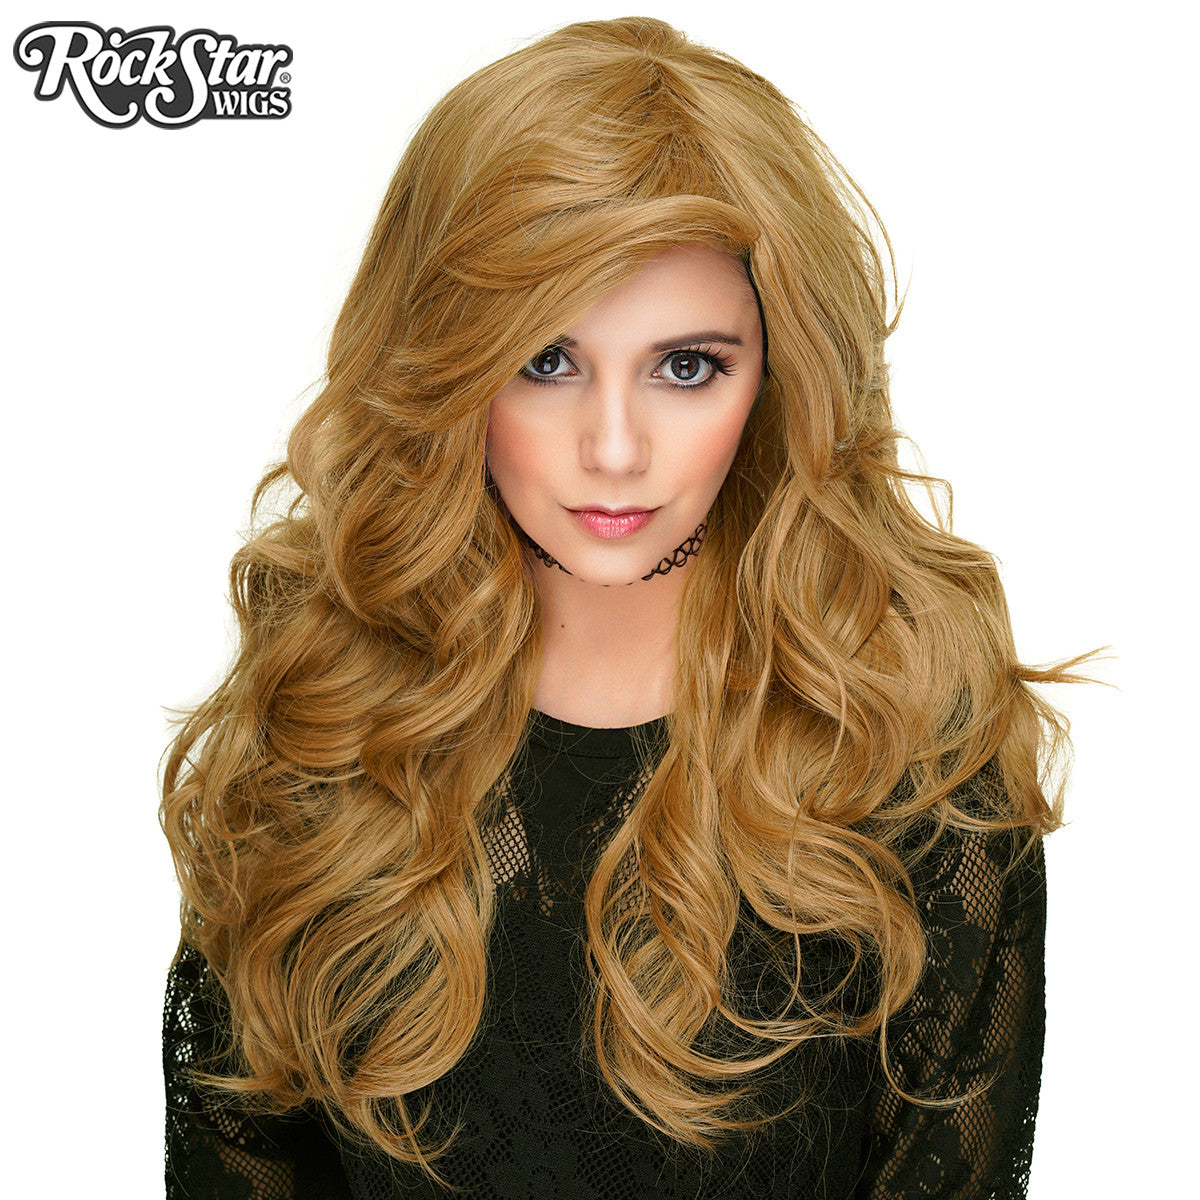 rockstar wigs174 farrah� collection ing233nue 00172 � dolluxe174